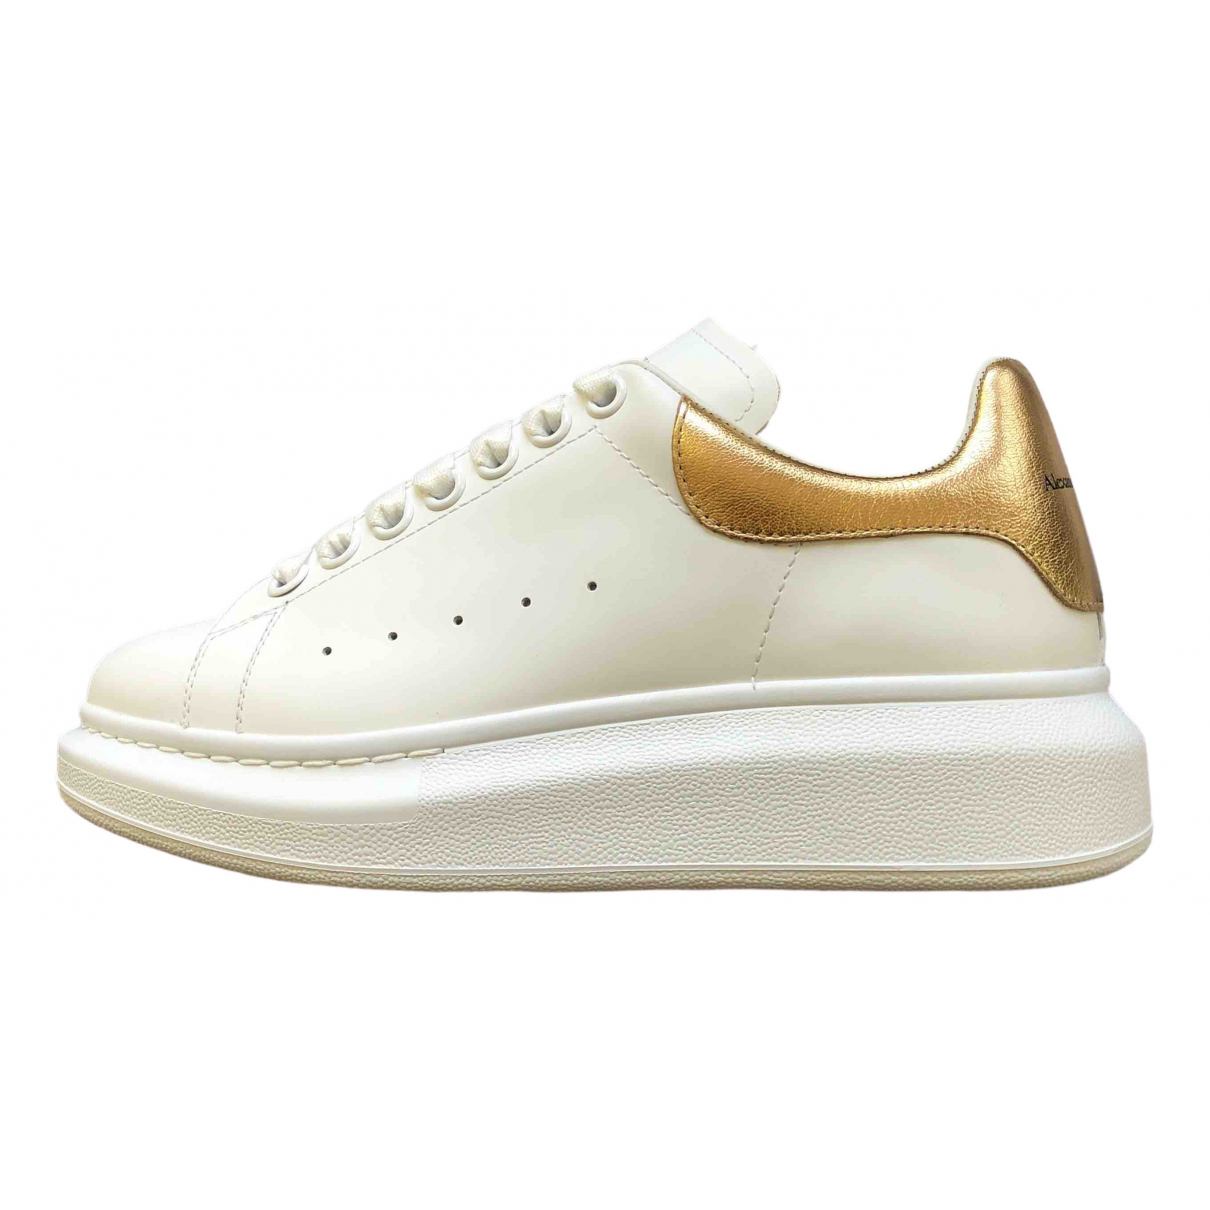 Alexander Mcqueen Oversize White Leather Trainers for Women 37.5 EU